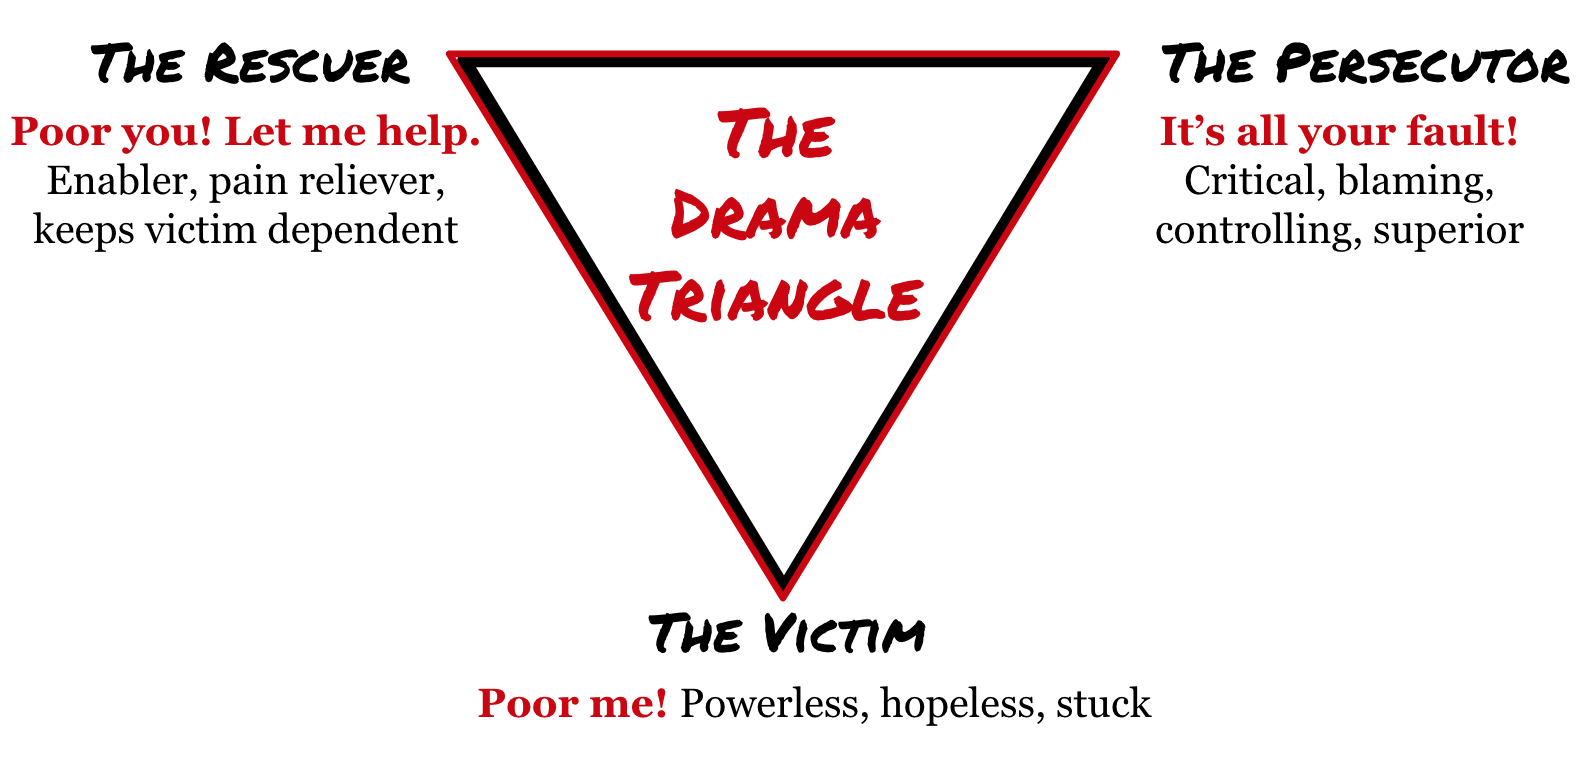 victim mentality People with a victim mentality blame others for their misfortune look for positive solutions to their problems, but don't let them excuse poor performance.